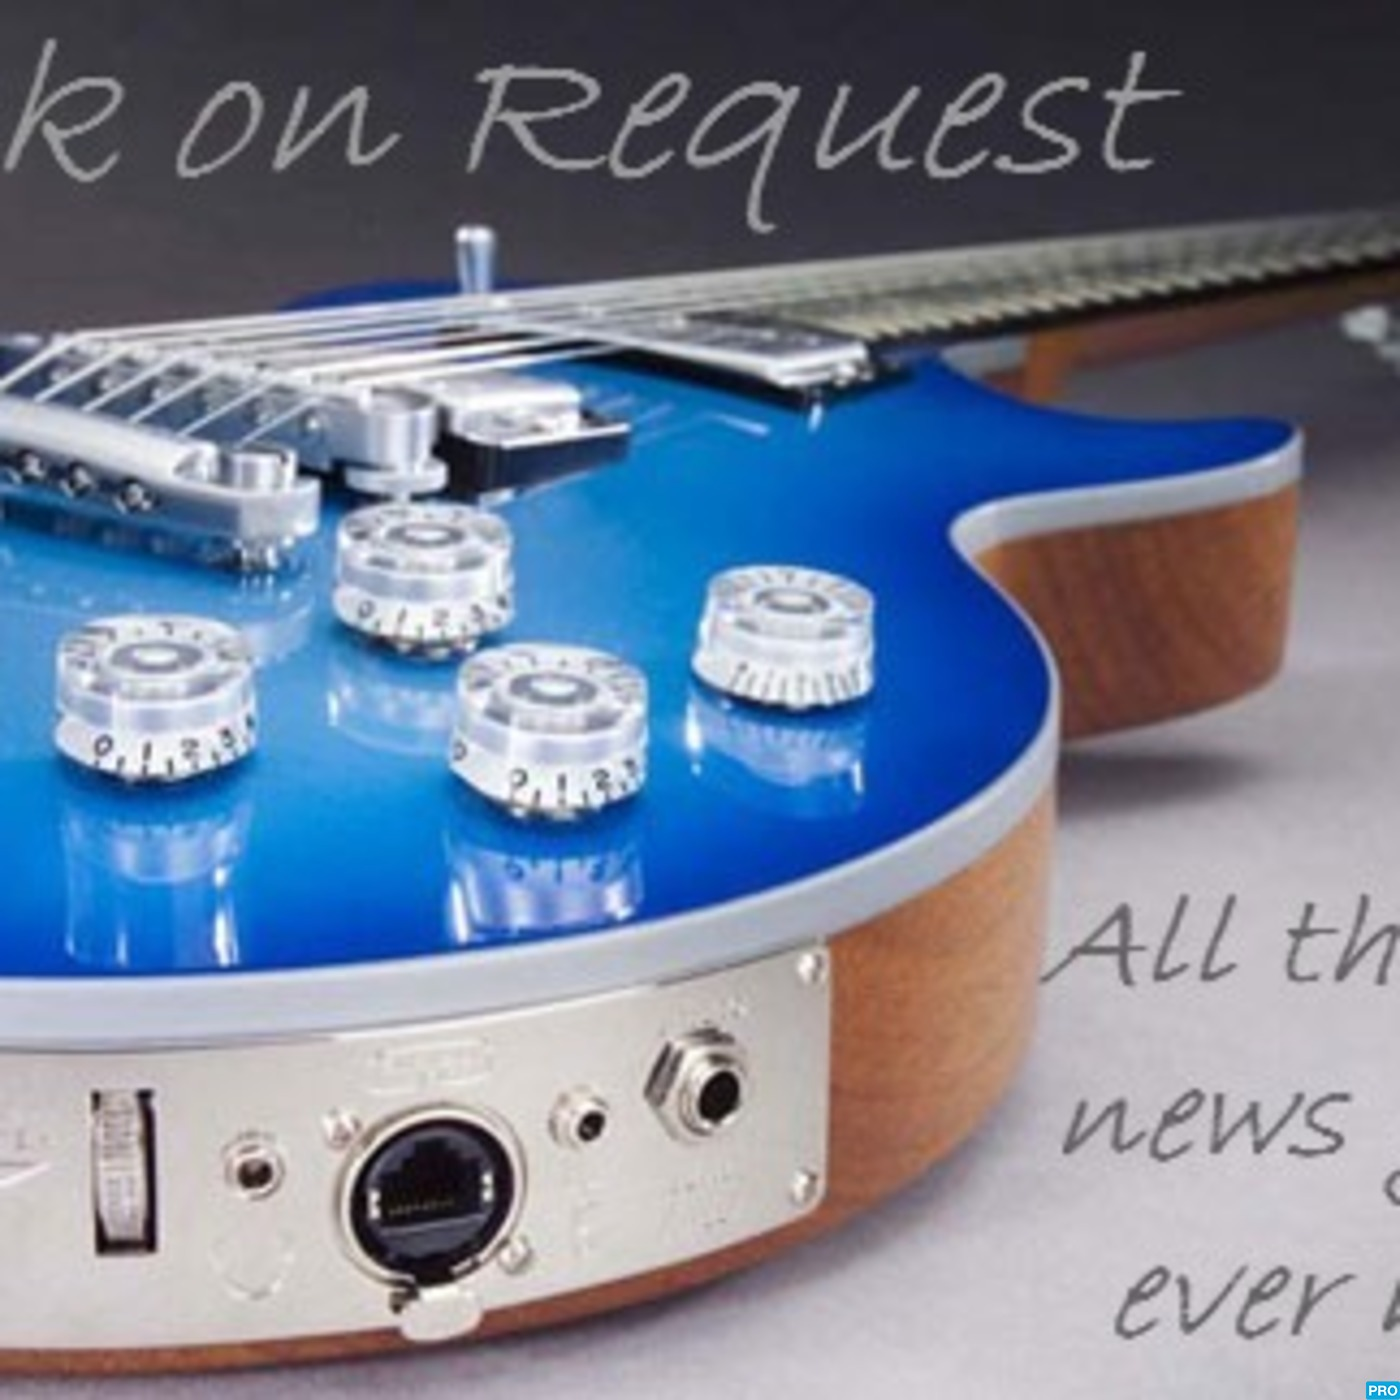 On Request Magazine - Music, Interviews and More